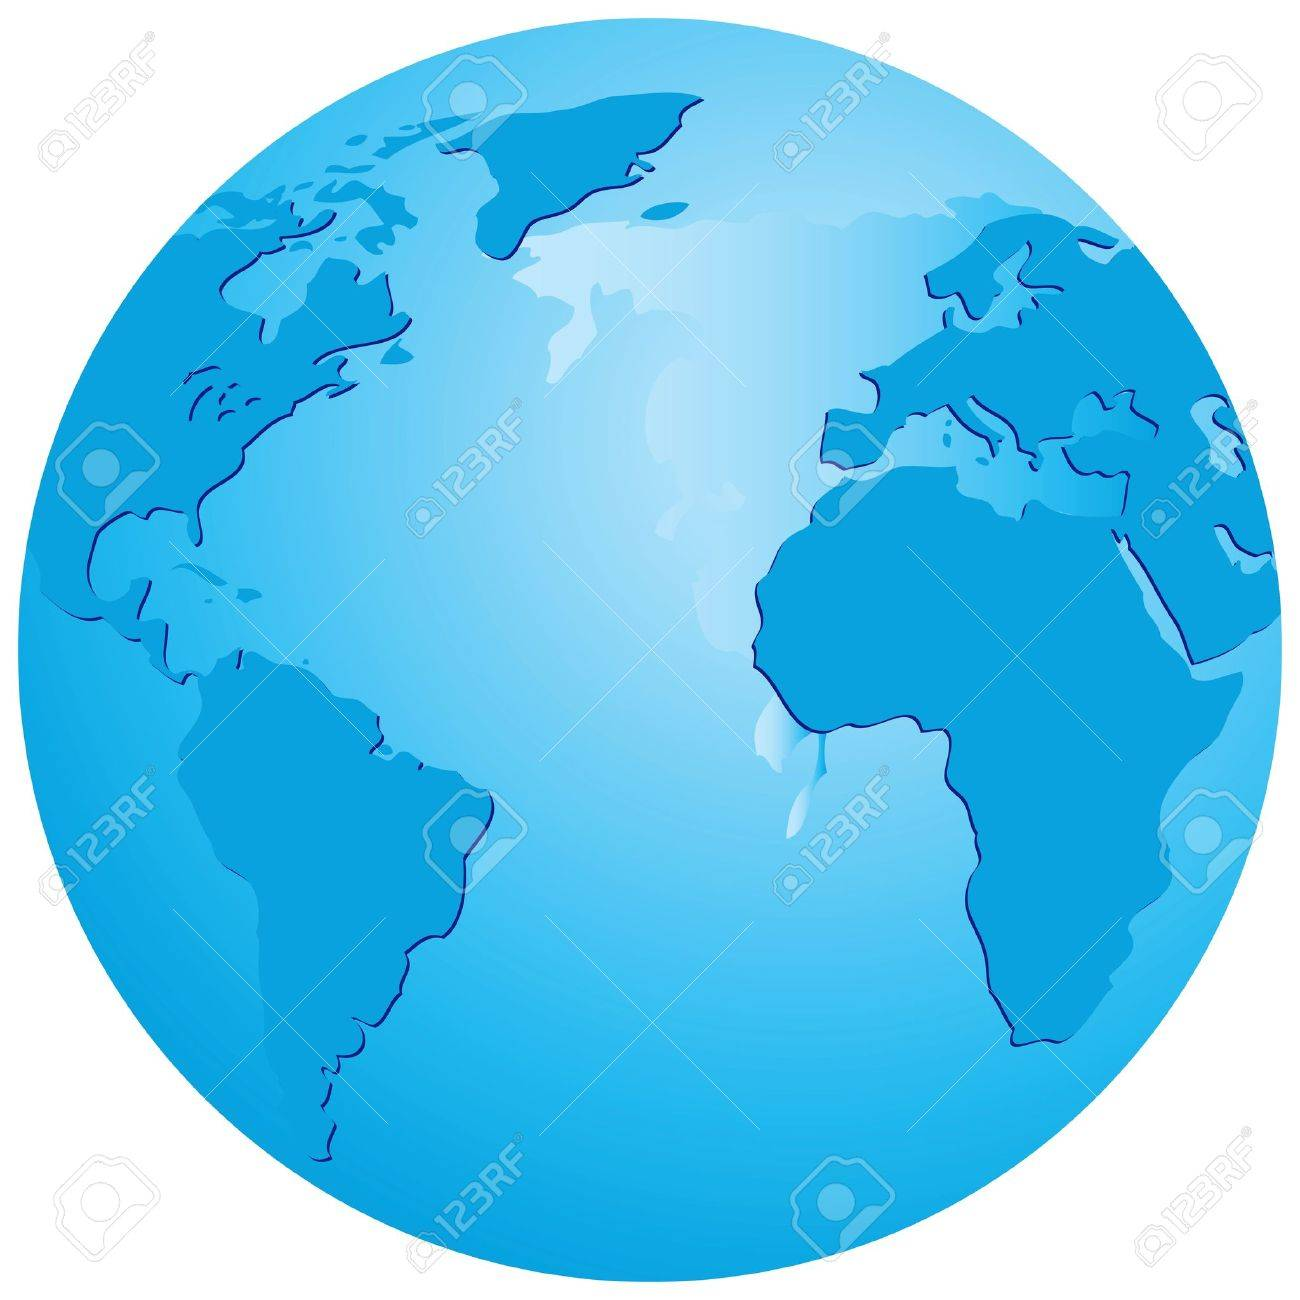 Map Of The World Transparent.Transparent Globe With An Emphasis On The Atlantic Ocean Vector